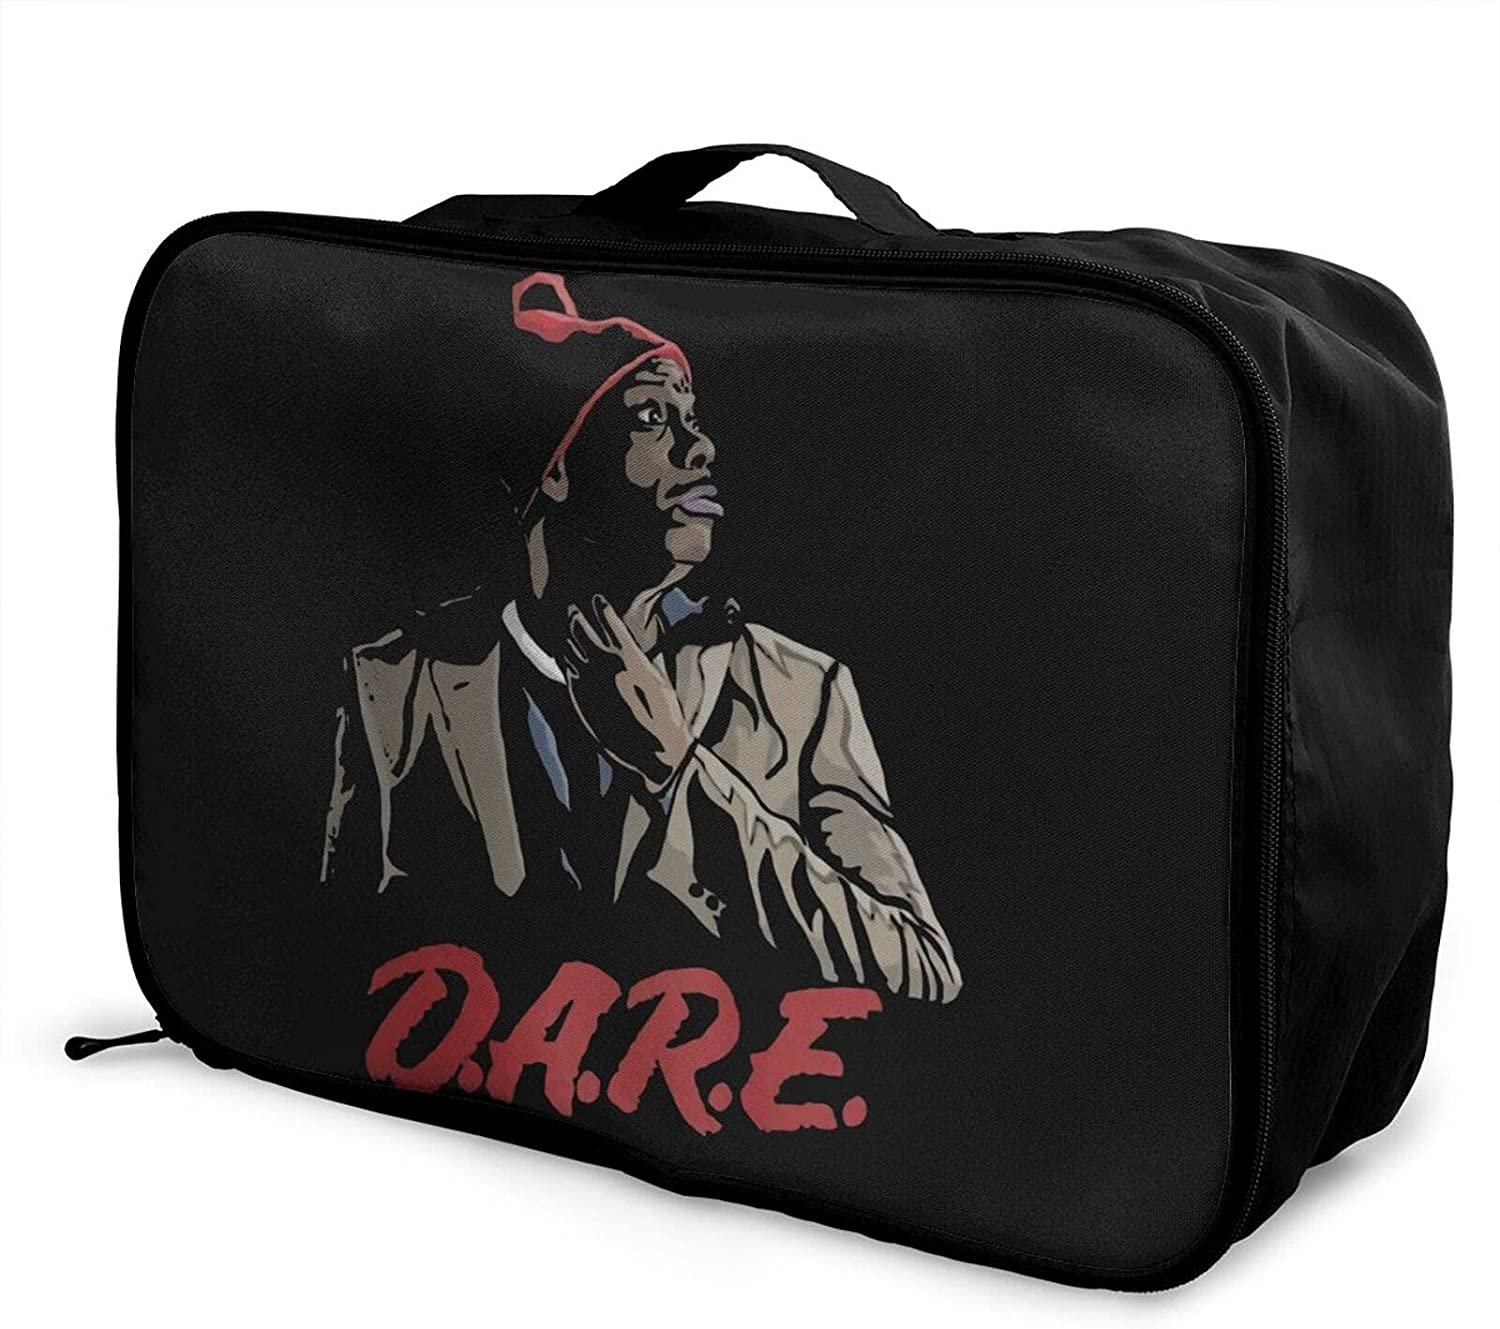 Dave Chappelle Lightweight Large Capacity Max 65% OFF unisex Bag Portable Luggage W